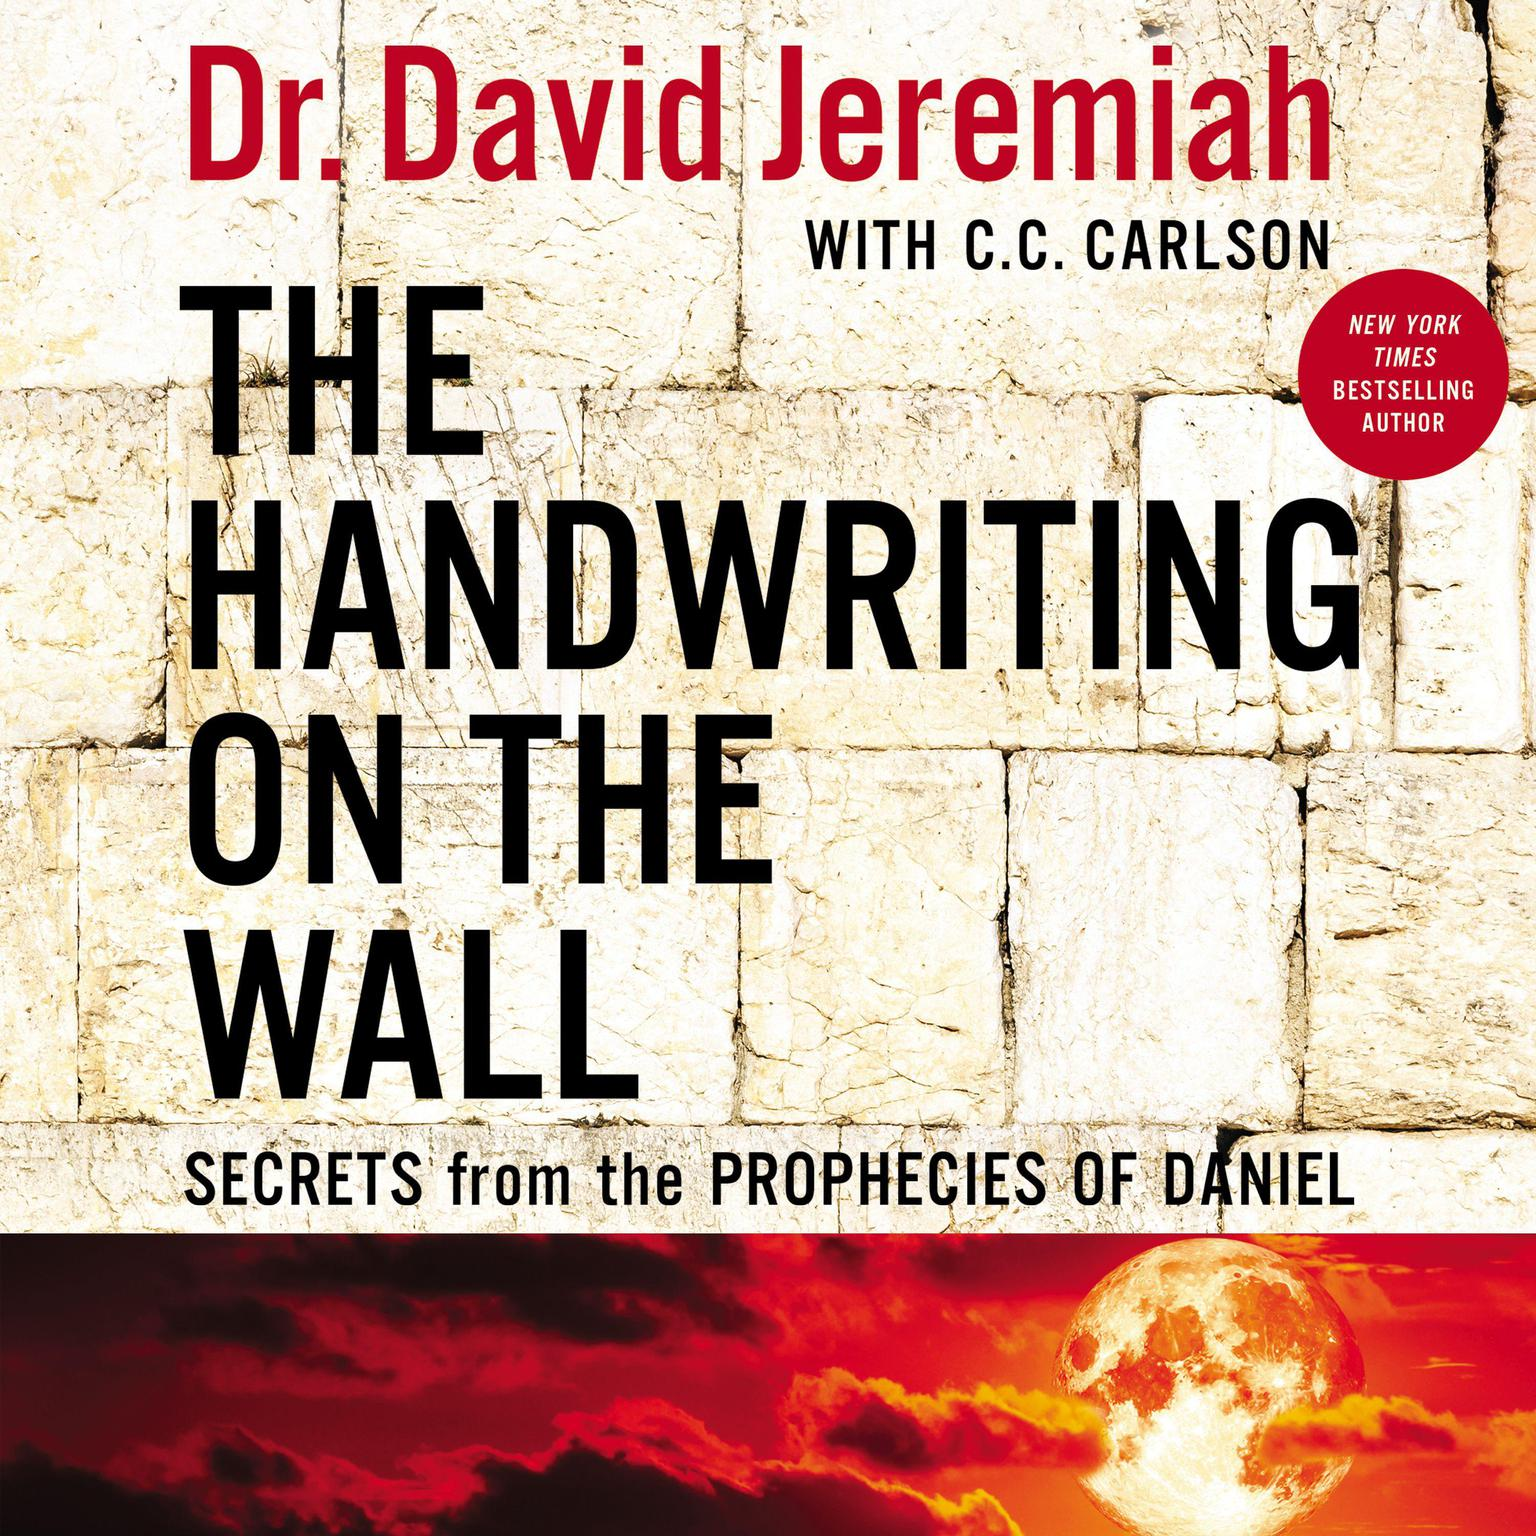 Printable The Handwriting on the Wall: Secrets from the Prophecies of Daniel Audiobook Cover Art